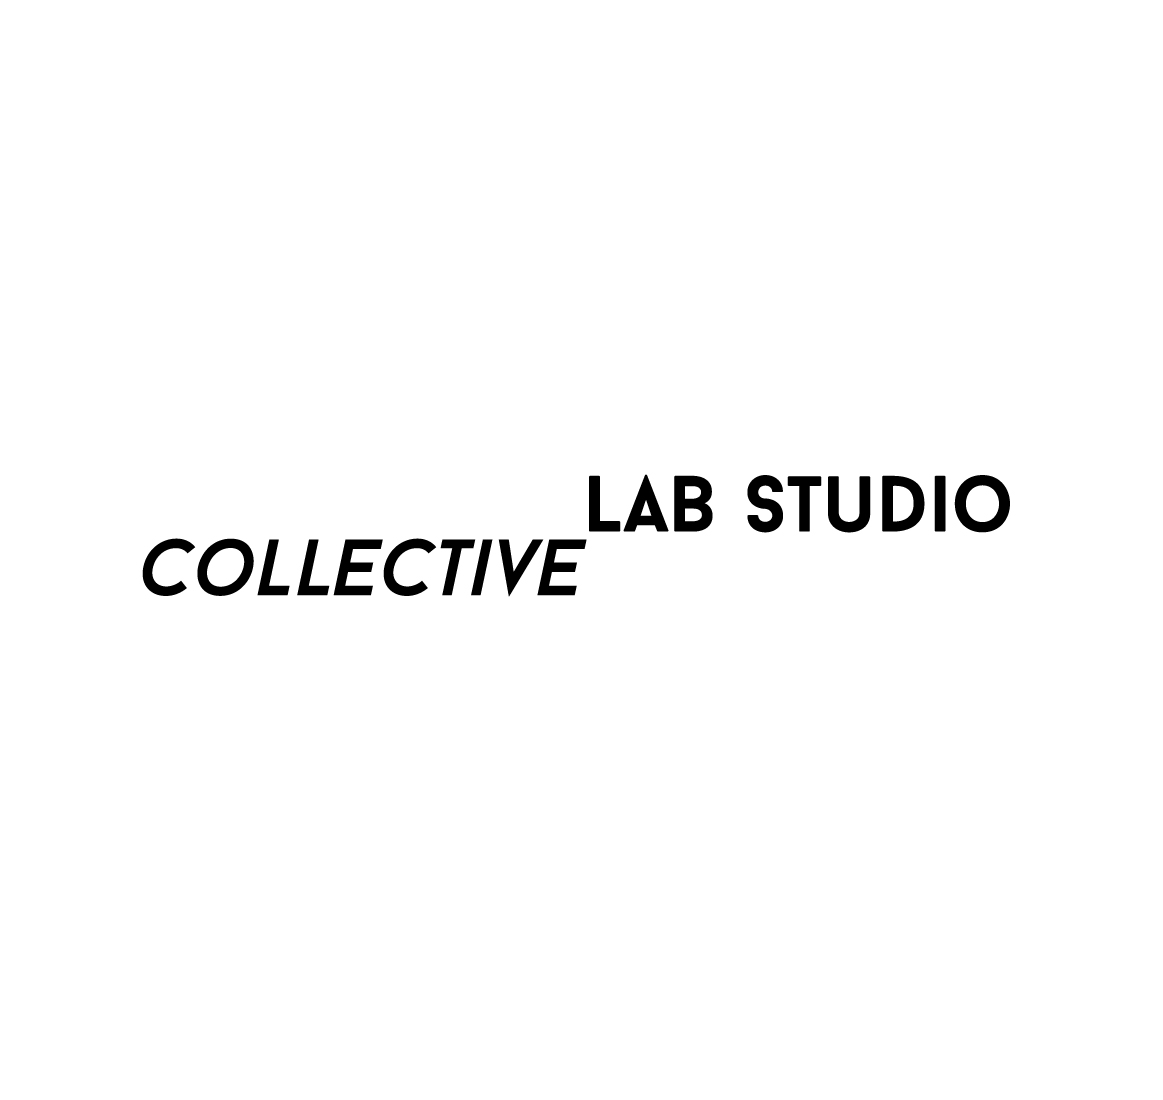 collectivelabstudio_02-05.jpg